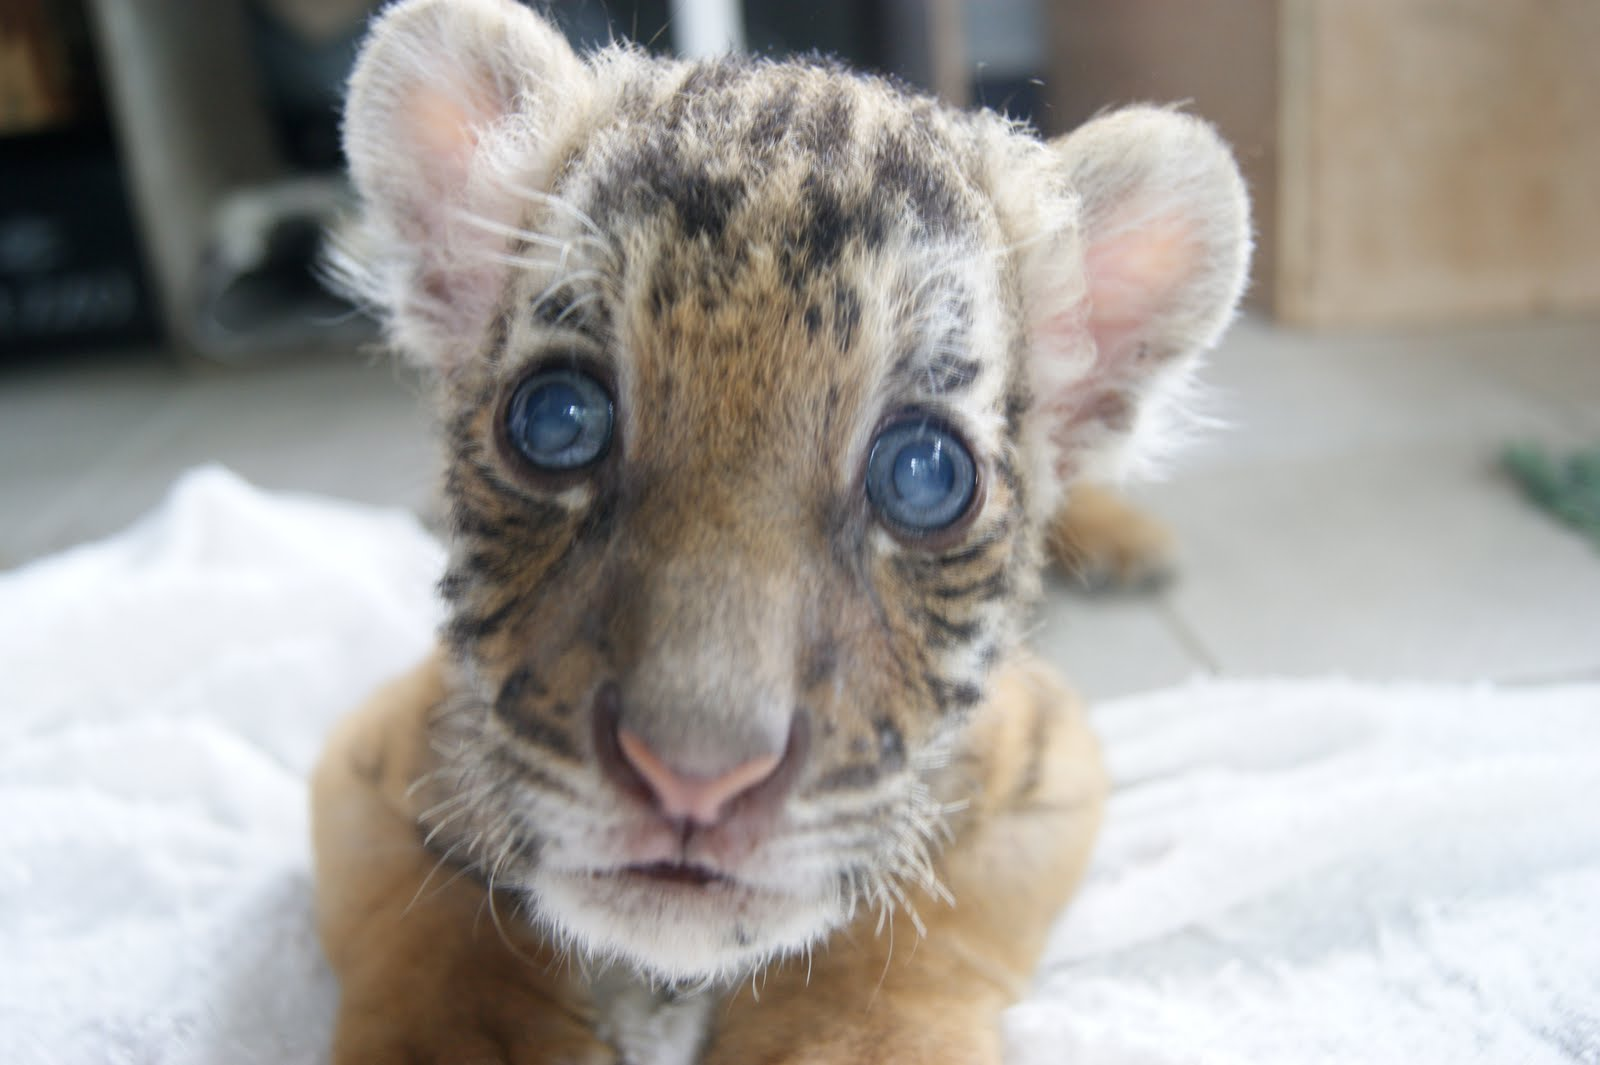 The Cutest Baby Tiger In The World